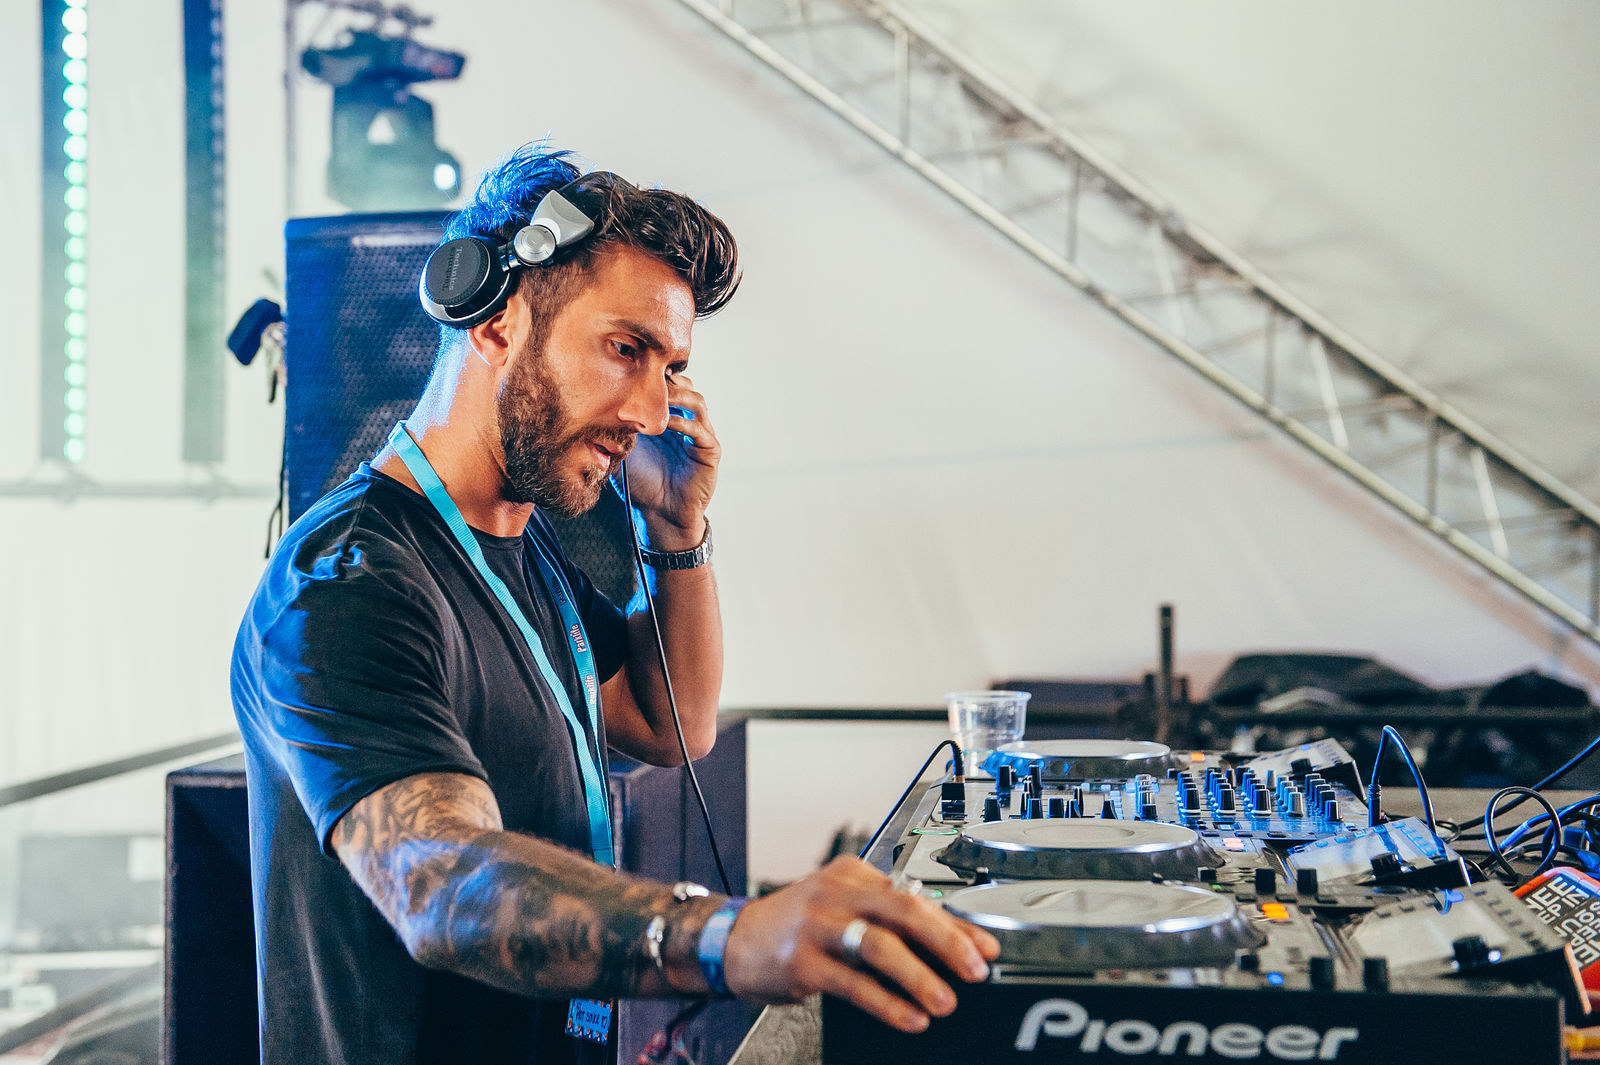 Hot since 82 live